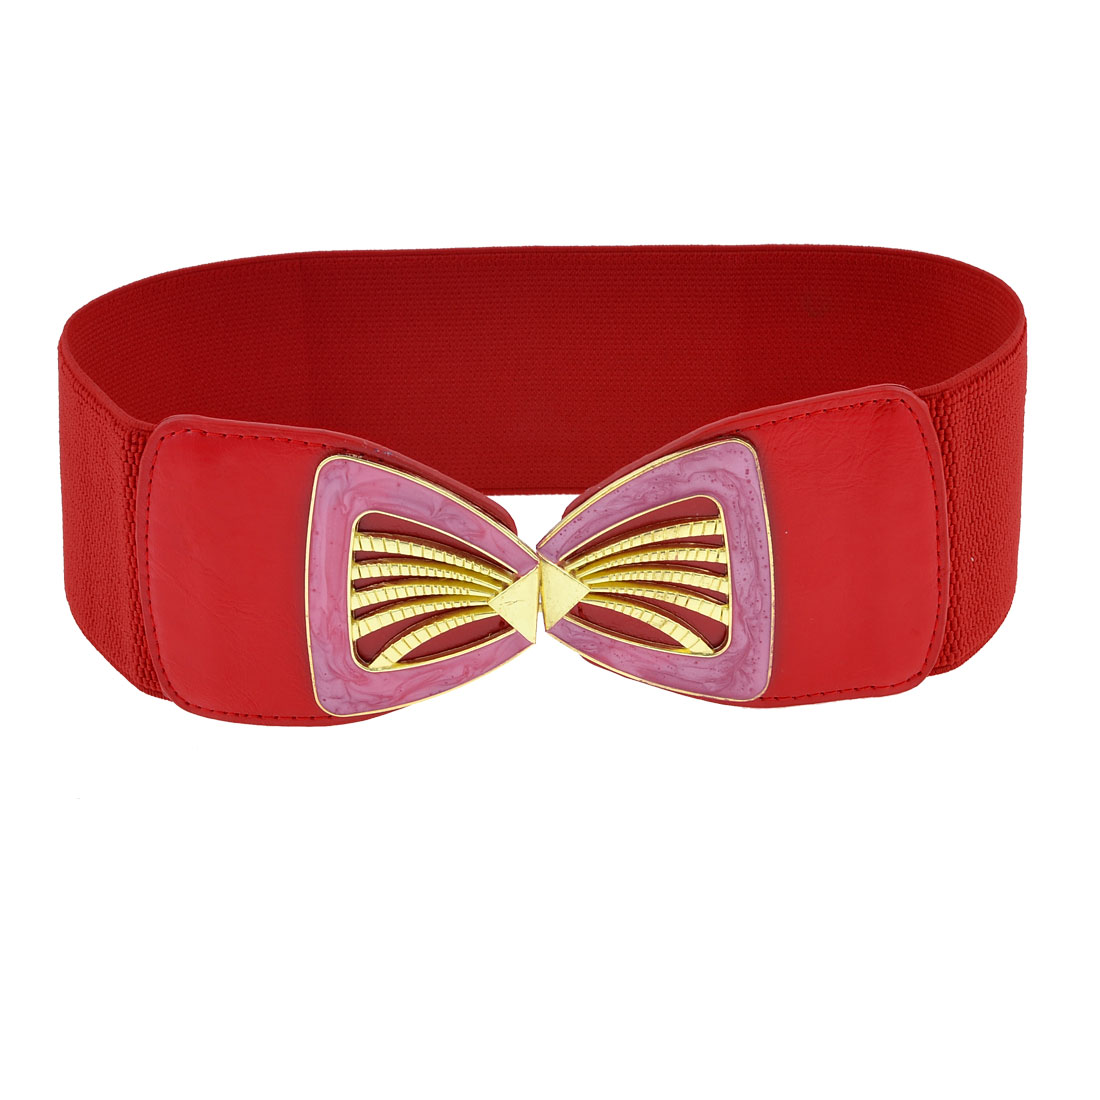 Red Elastic Cotton Fabric Band Gold Tone Seashell Shape Buckle Belt fot Girls